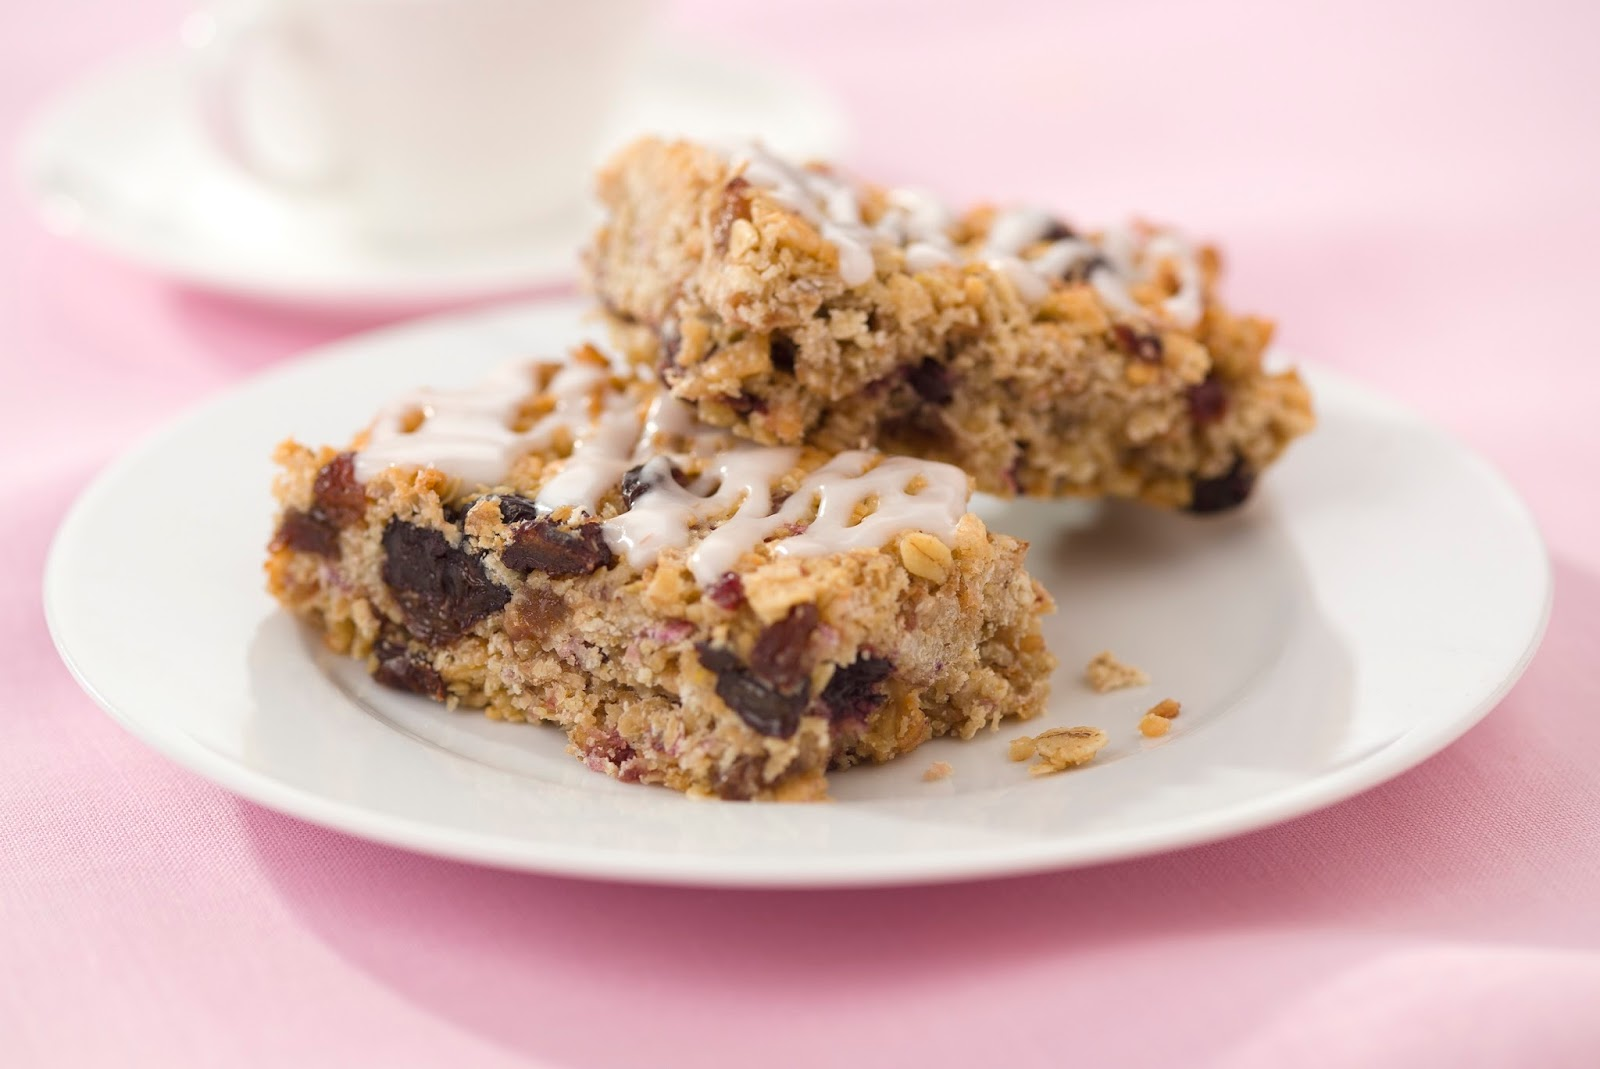 Rhubarb Breakfast Bars